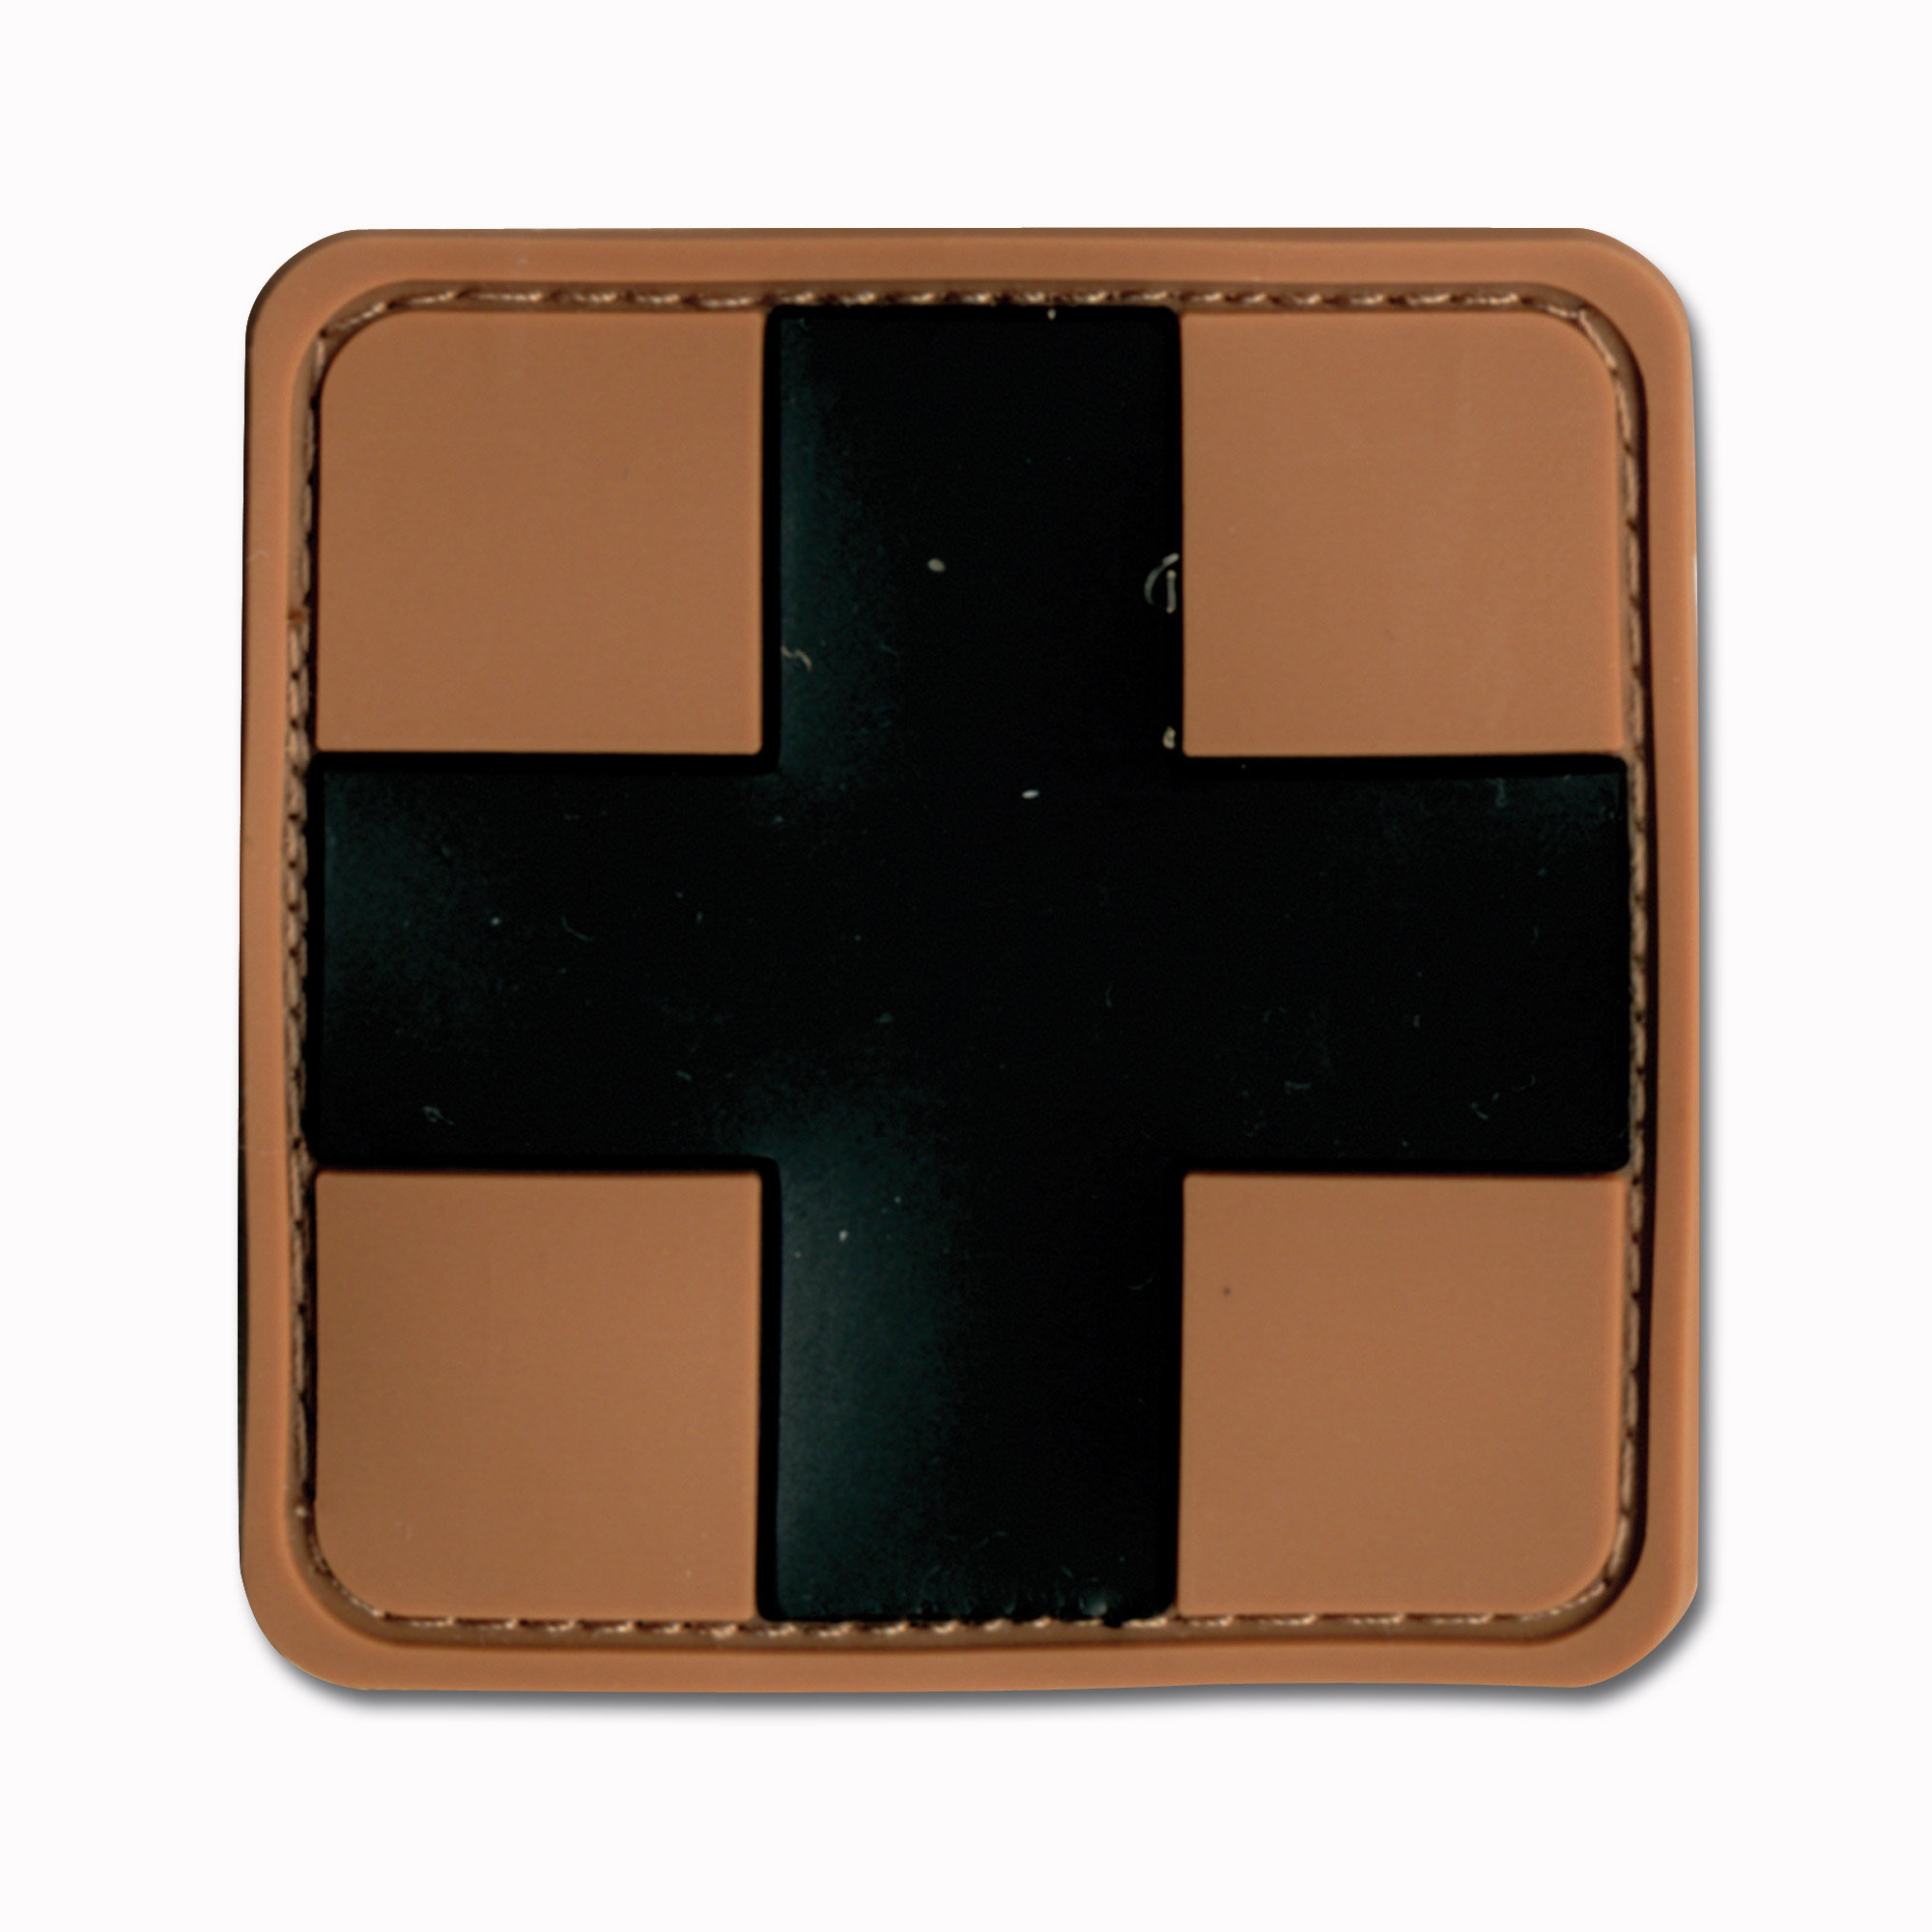 3D-Patch Red Cross Medic braun-schwarz